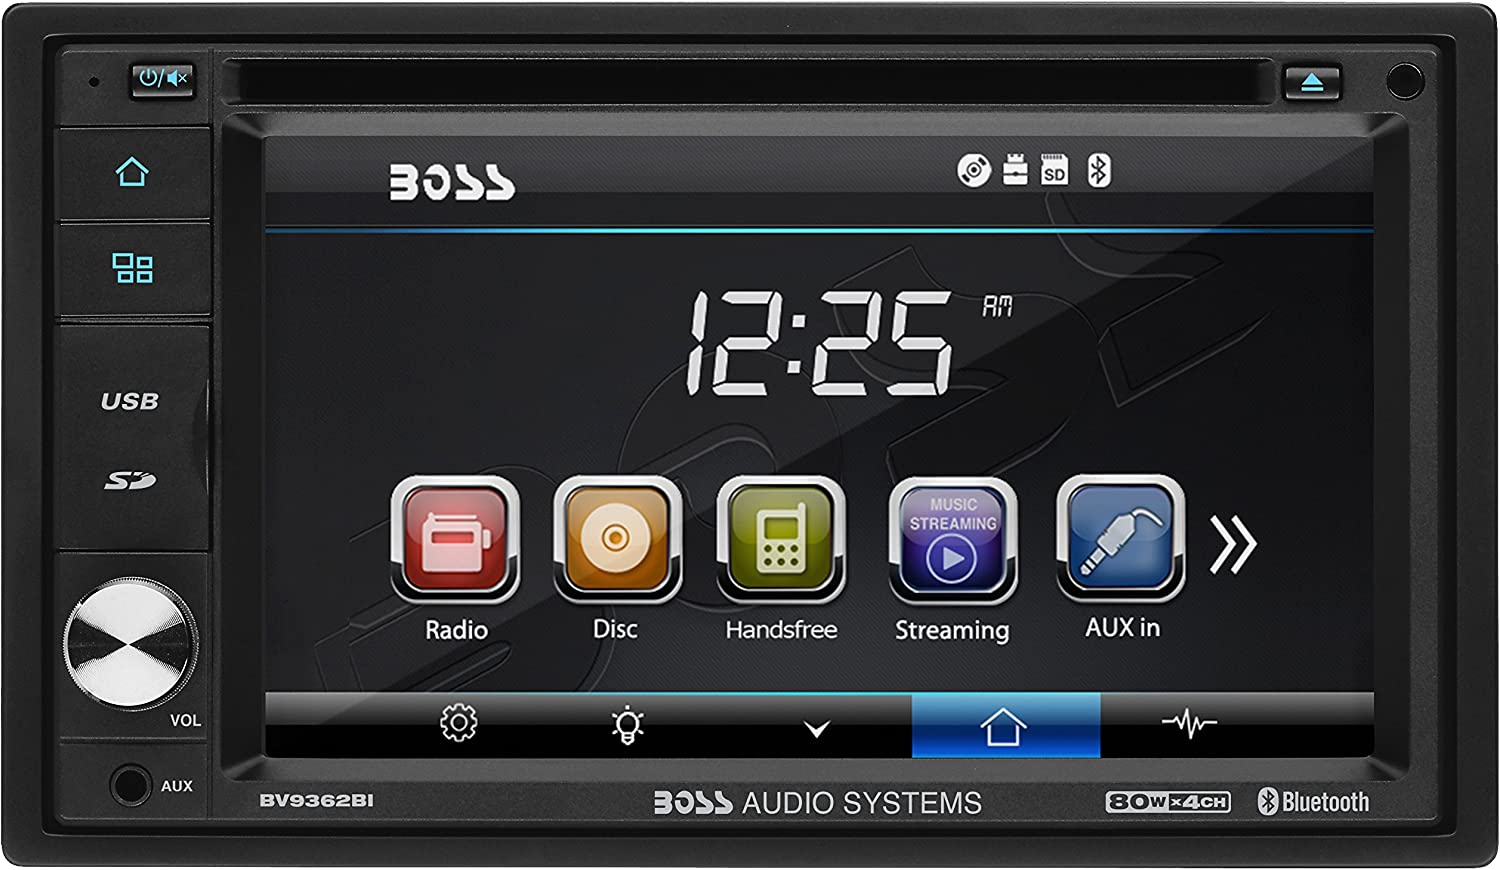 BOSS Audio Systems BV9362BI Car DVD Player